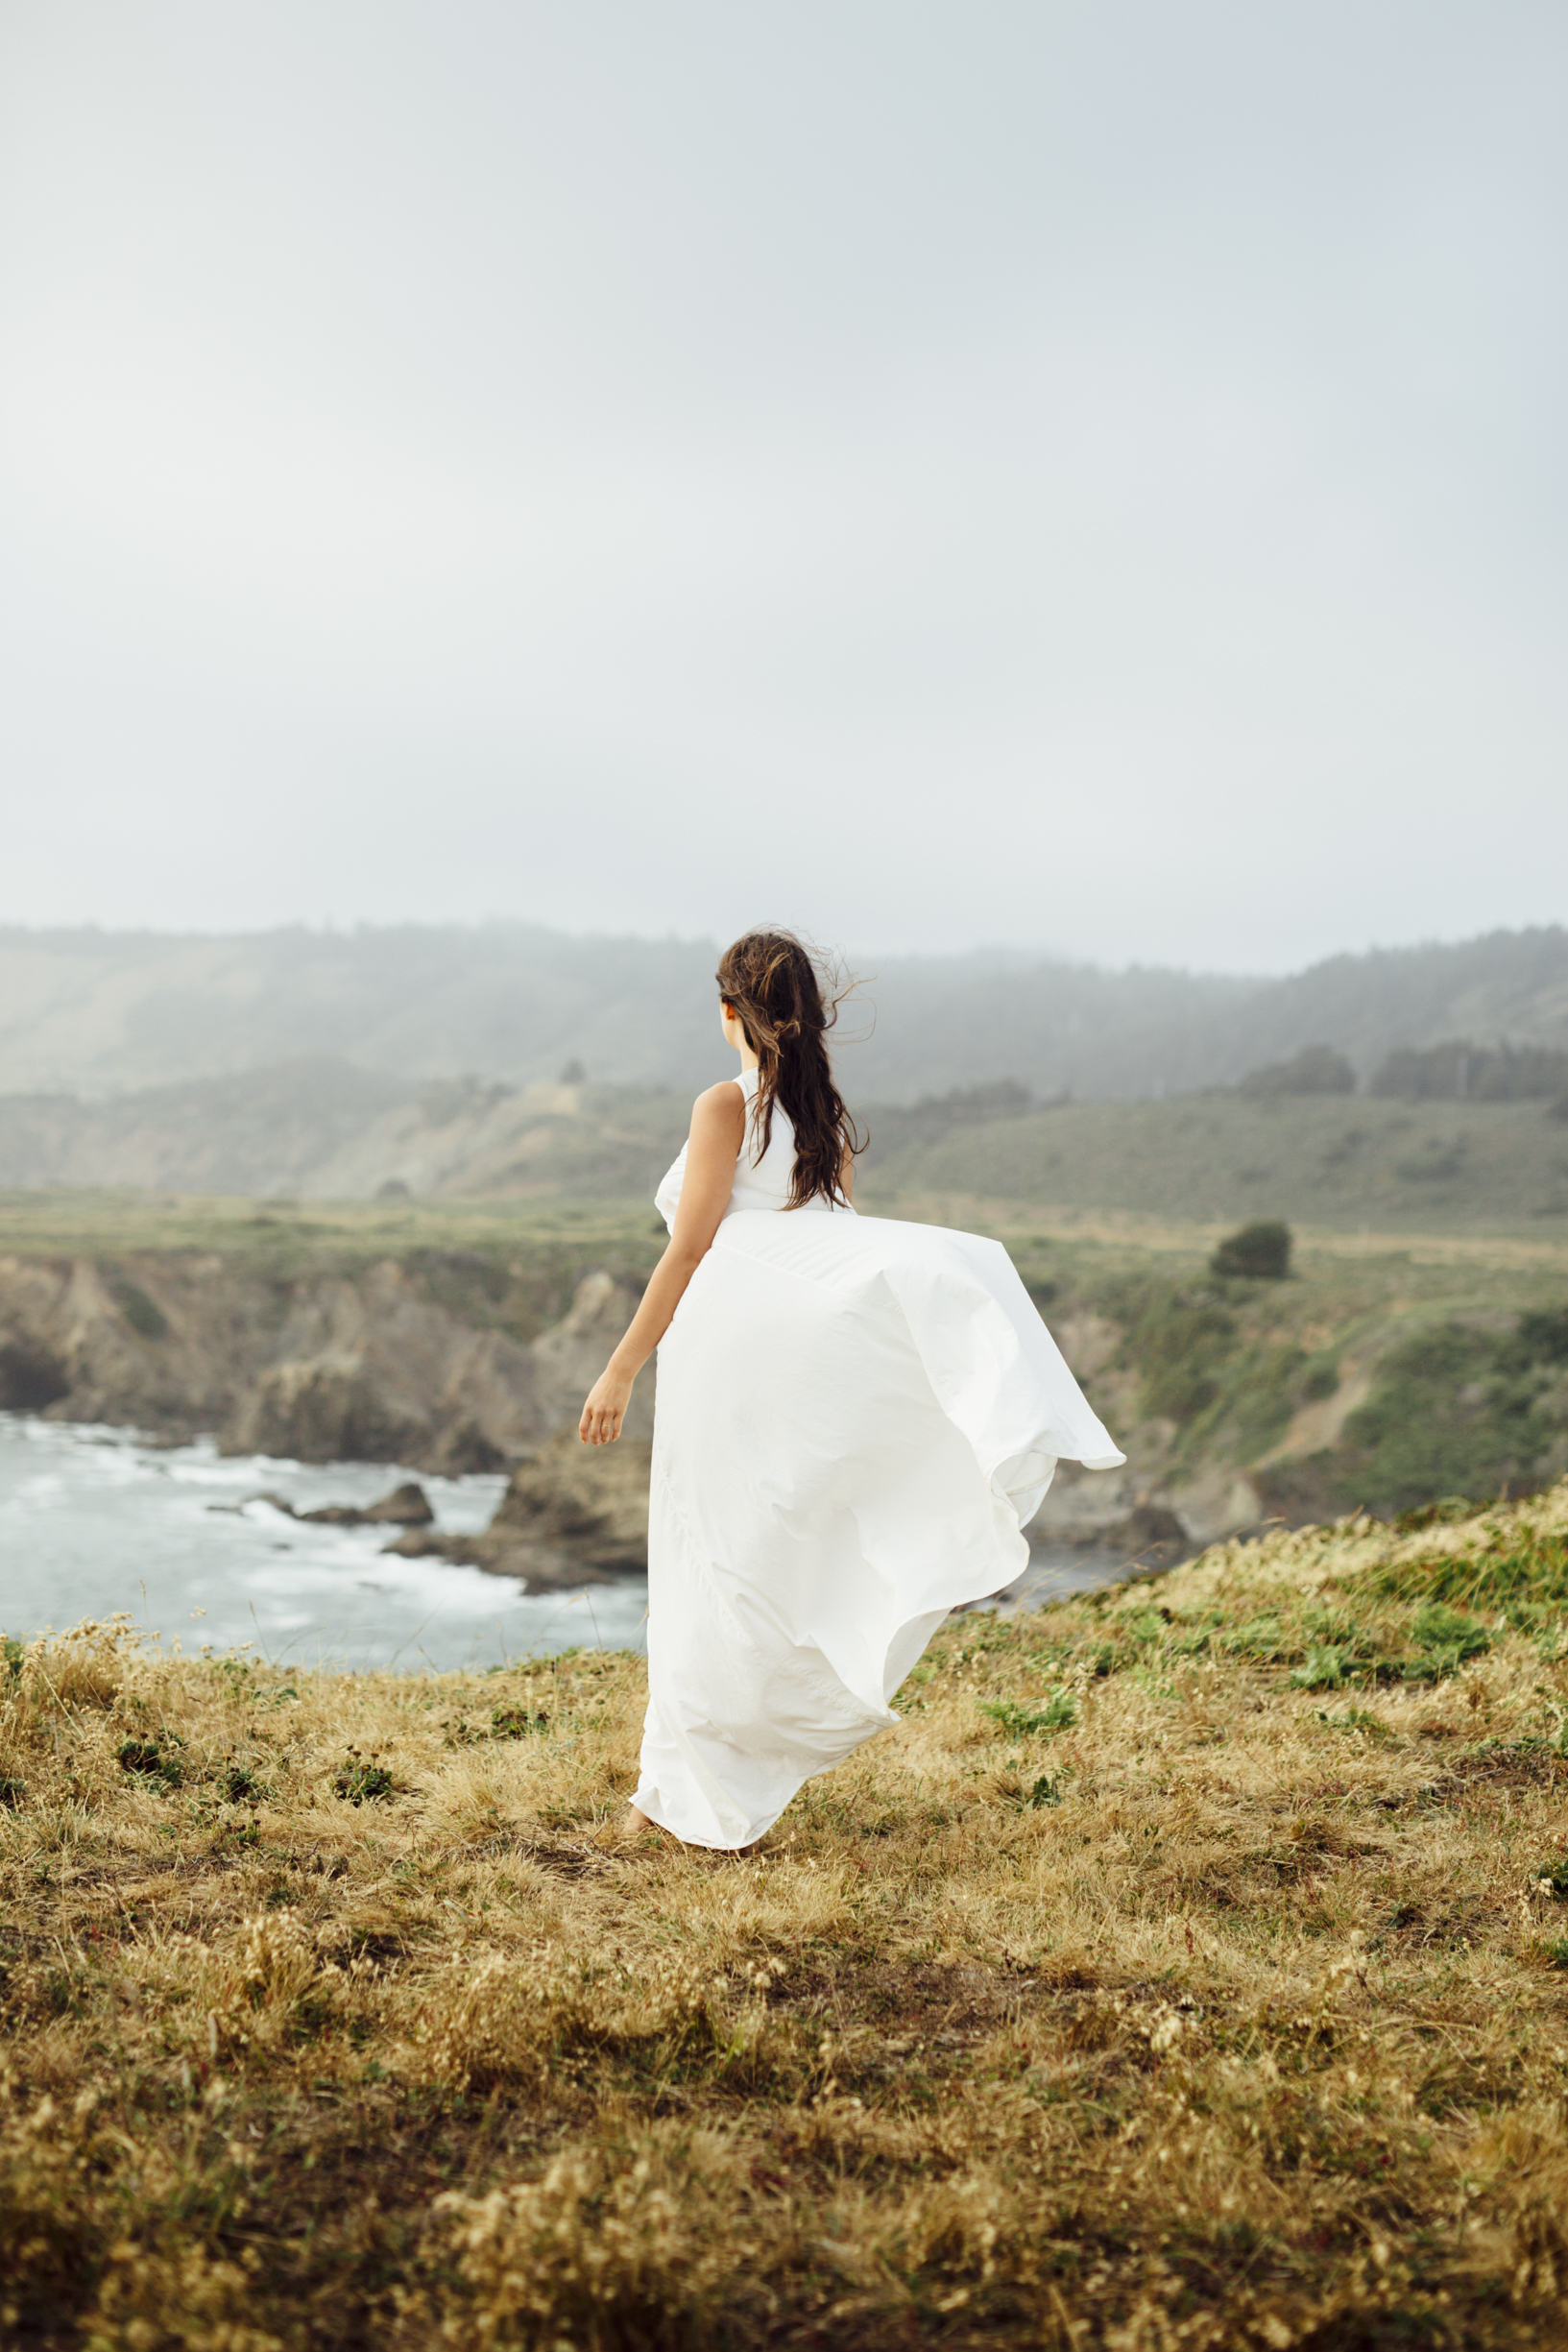 California-Wedding-Photography-by-Artur-Zaitsev-23